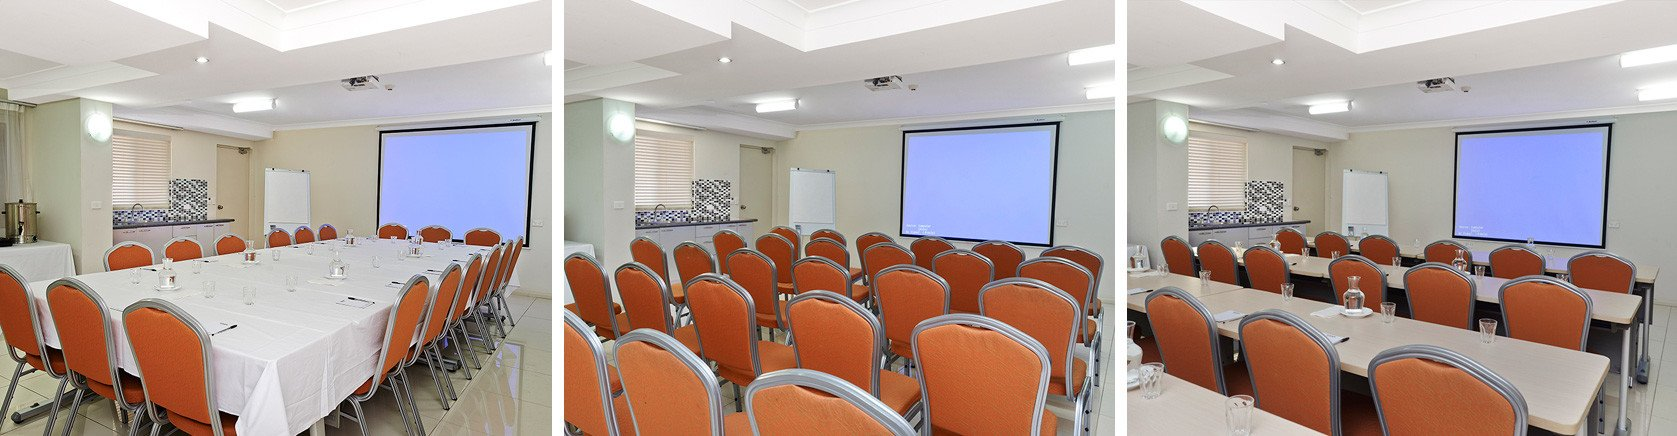 Conference Room with projector and screen